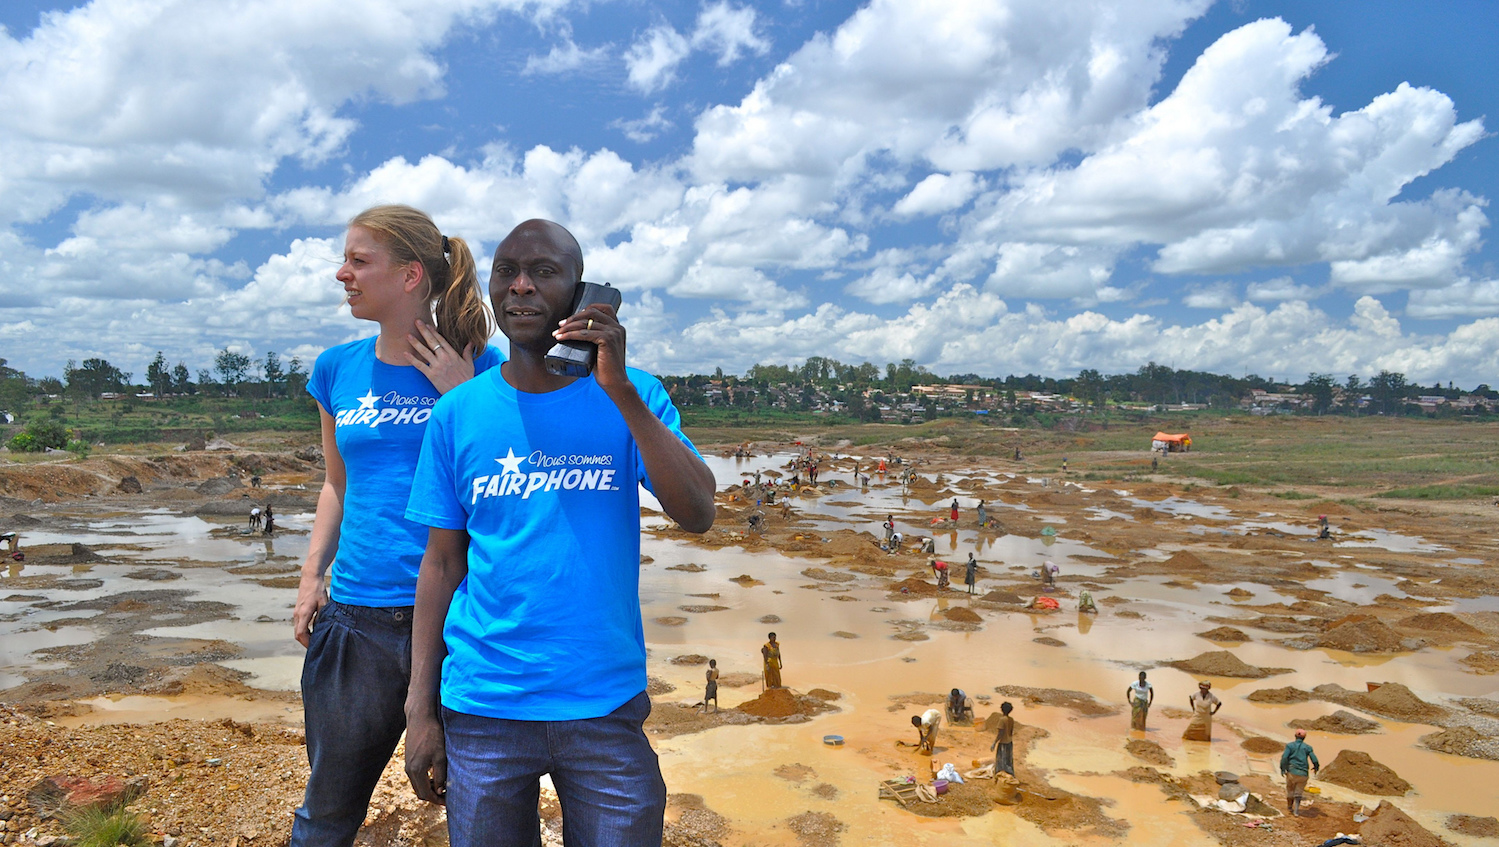 Fairphone raises €6.5 million and hires Tony's Chocolonely 'First Lady' to up its impact